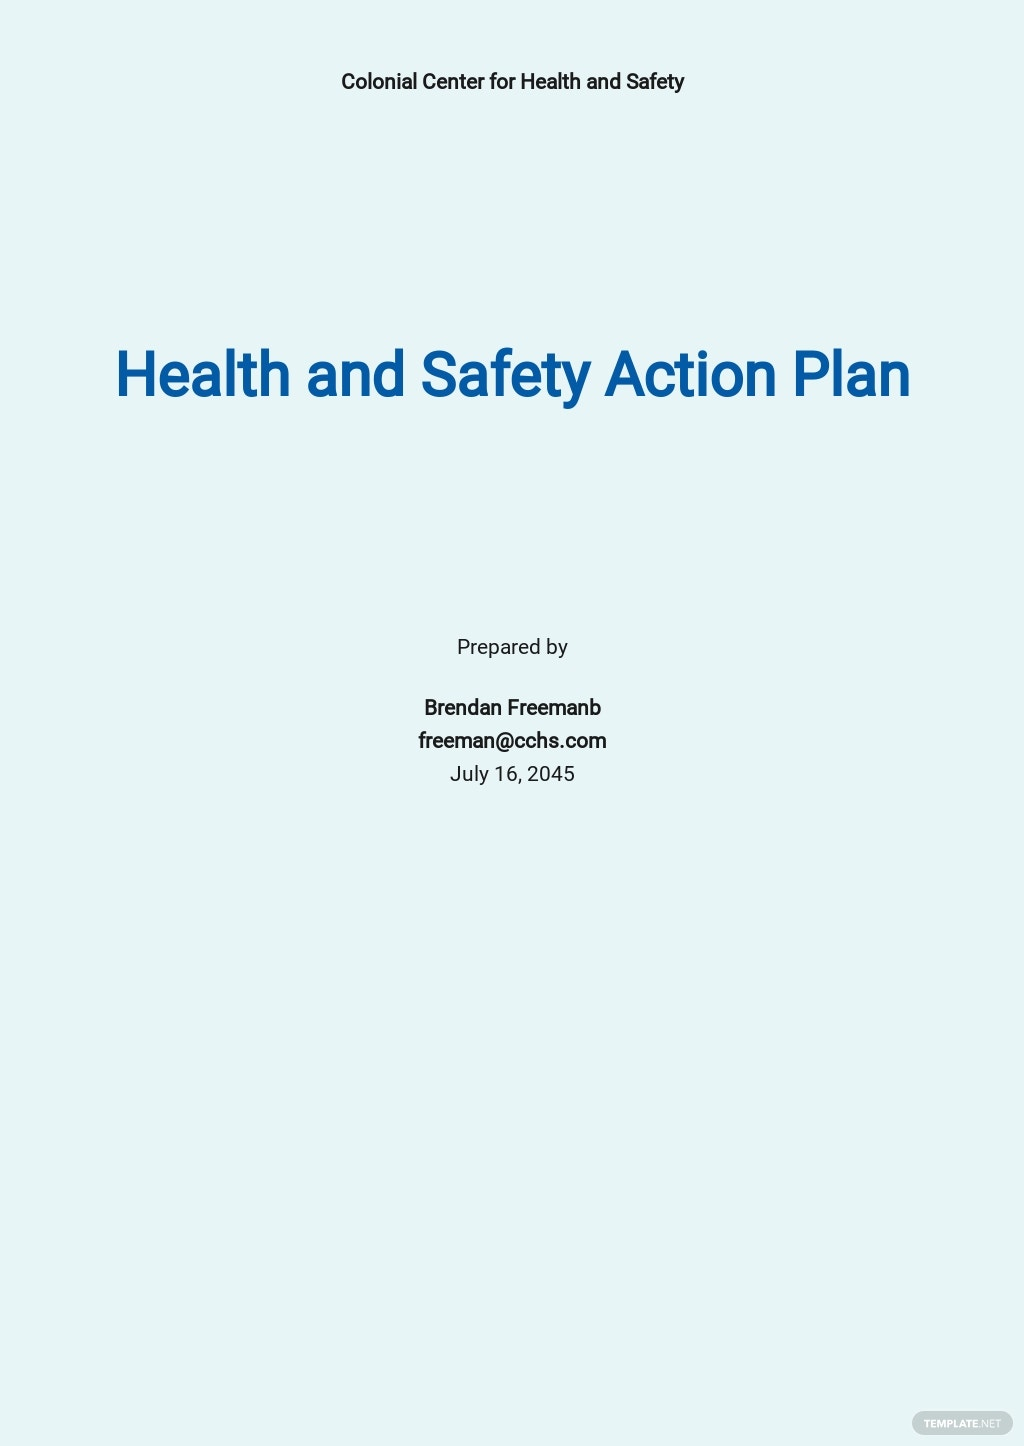 Health and Safety Action Plan Template